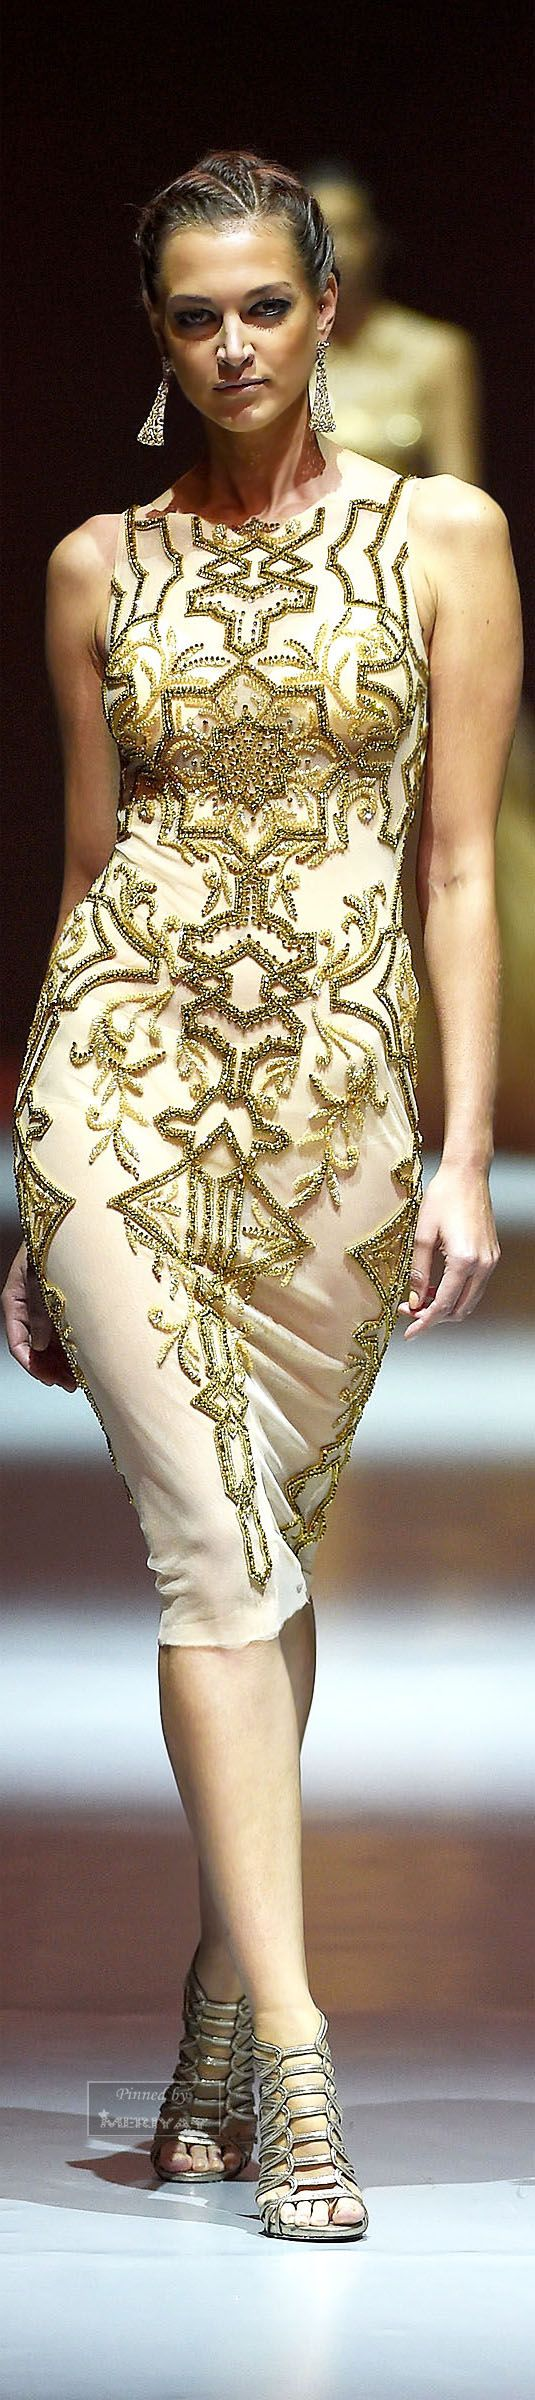 Cocktail dress: Dany Tabet Spring-summer 2015.